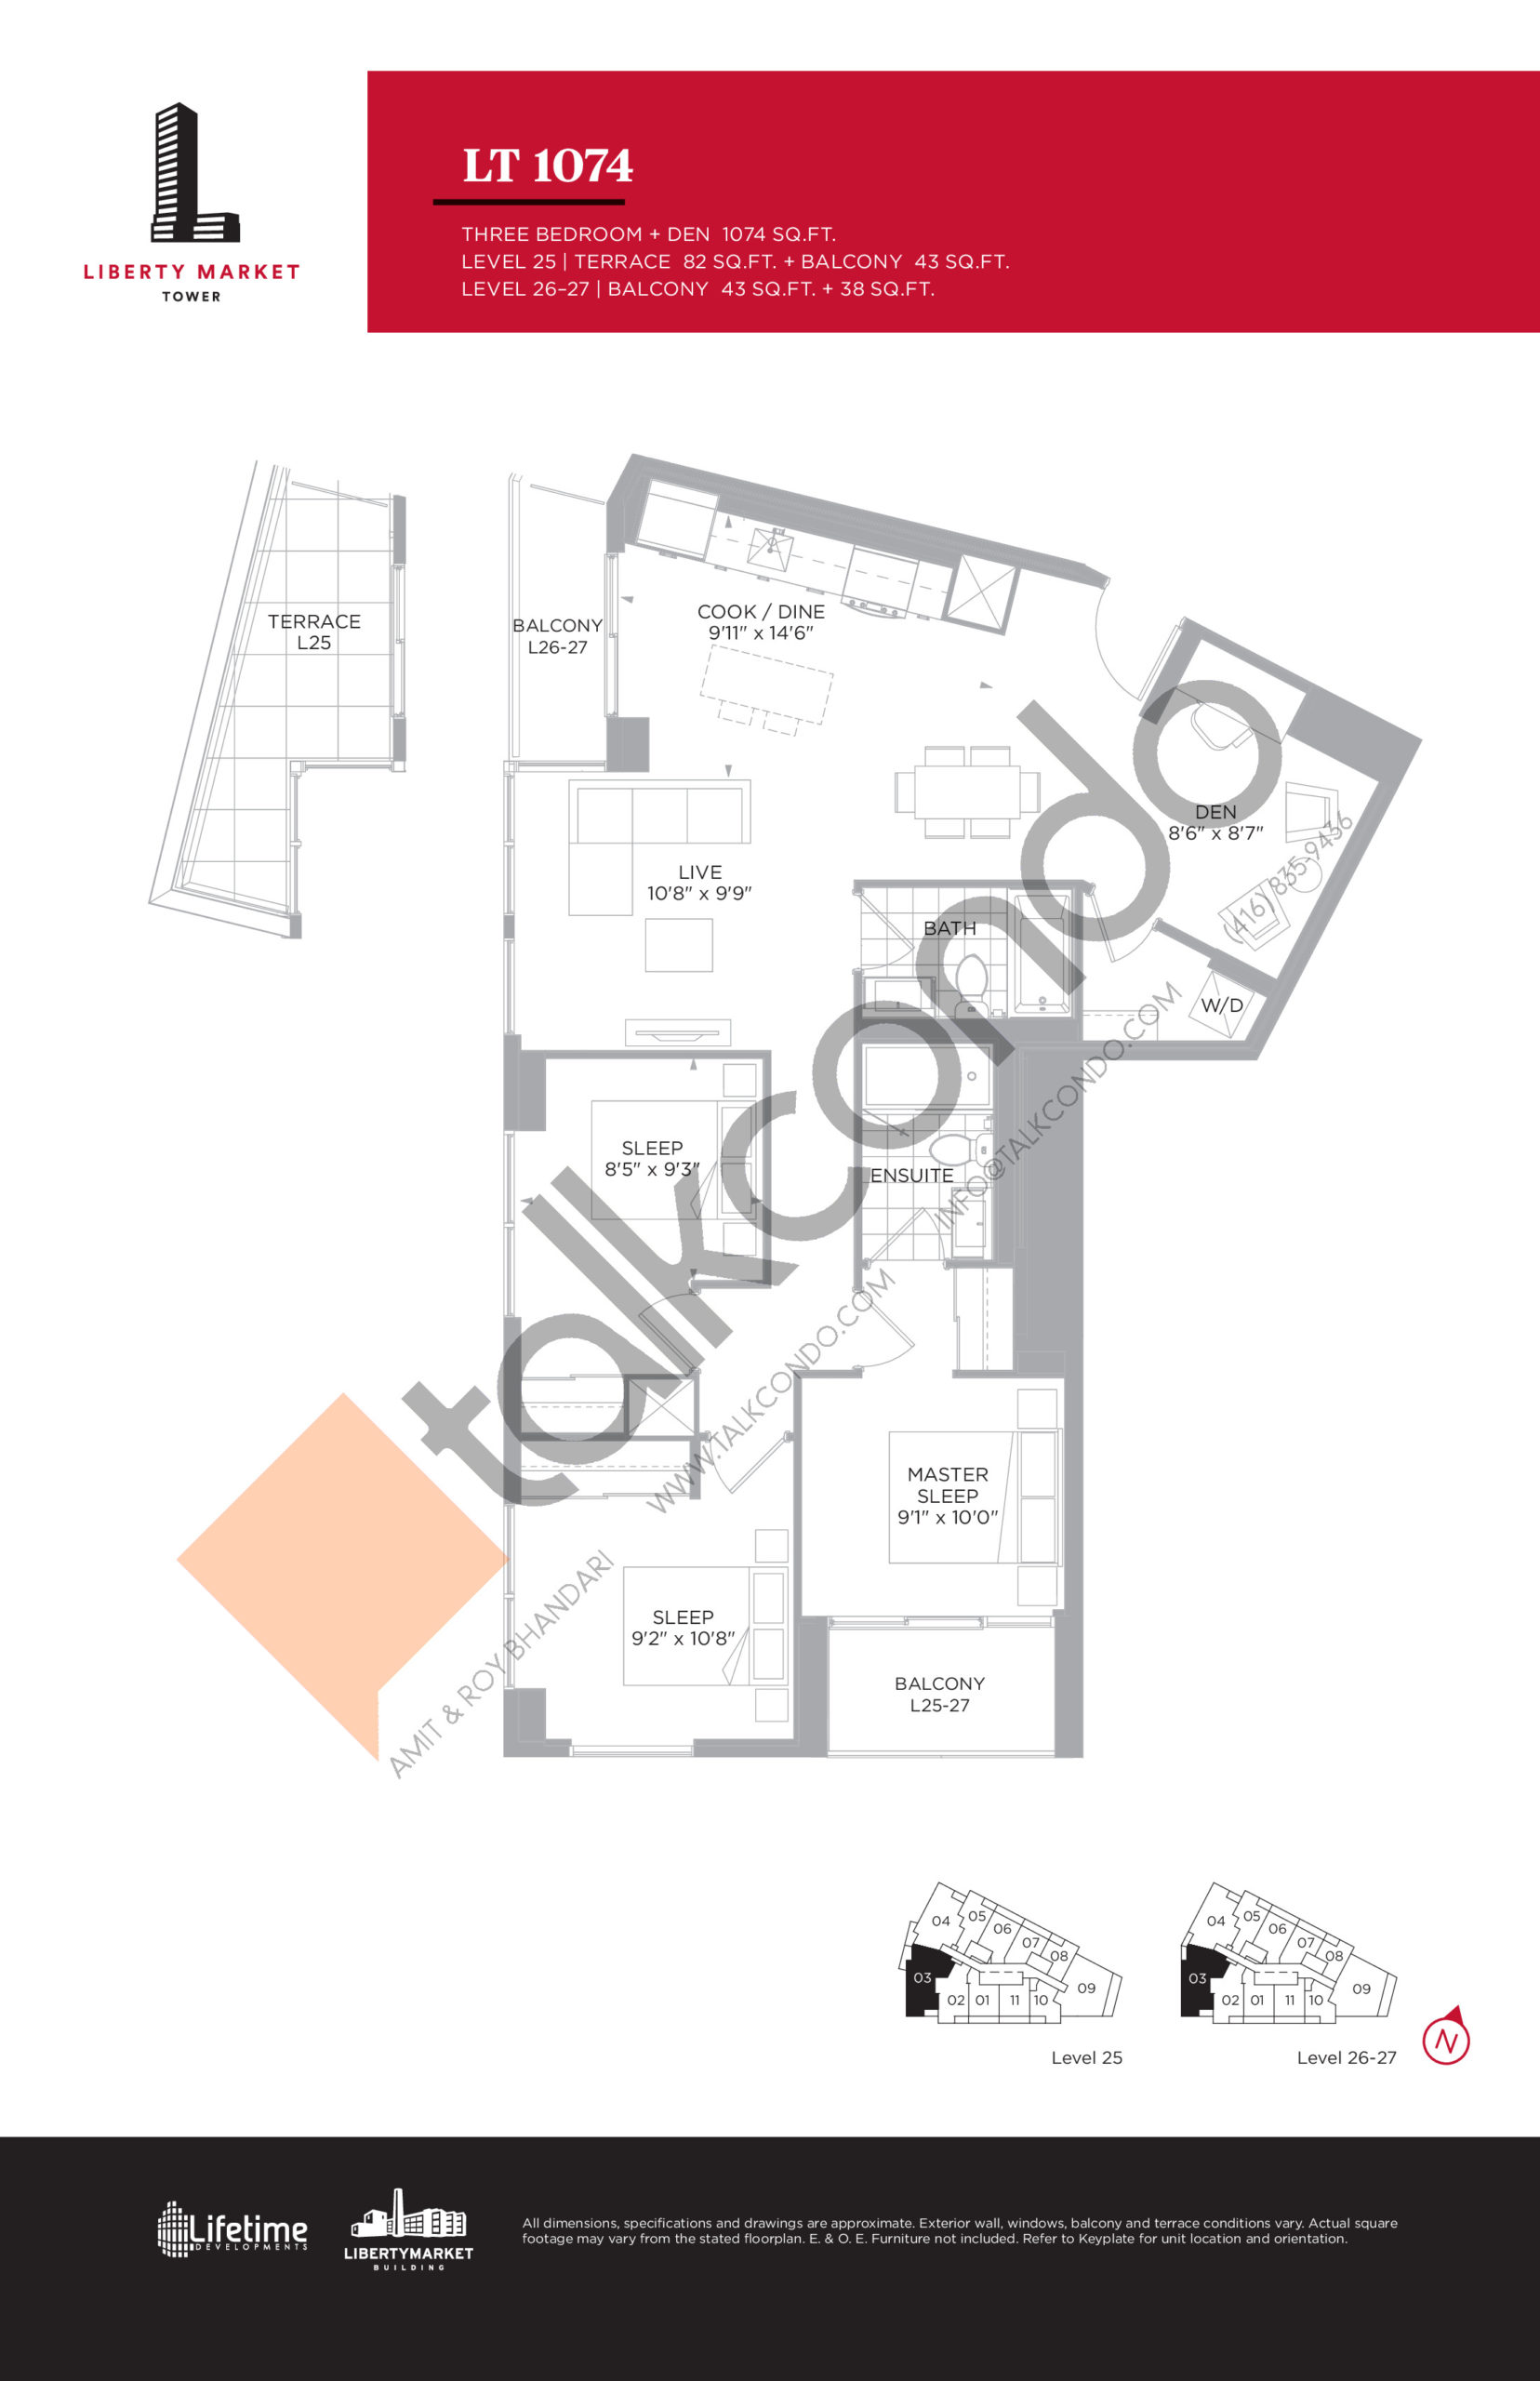 LT 1074 - Terrace Collection Floor Plan at Liberty Market Tower Condos - 1074 sq.ft